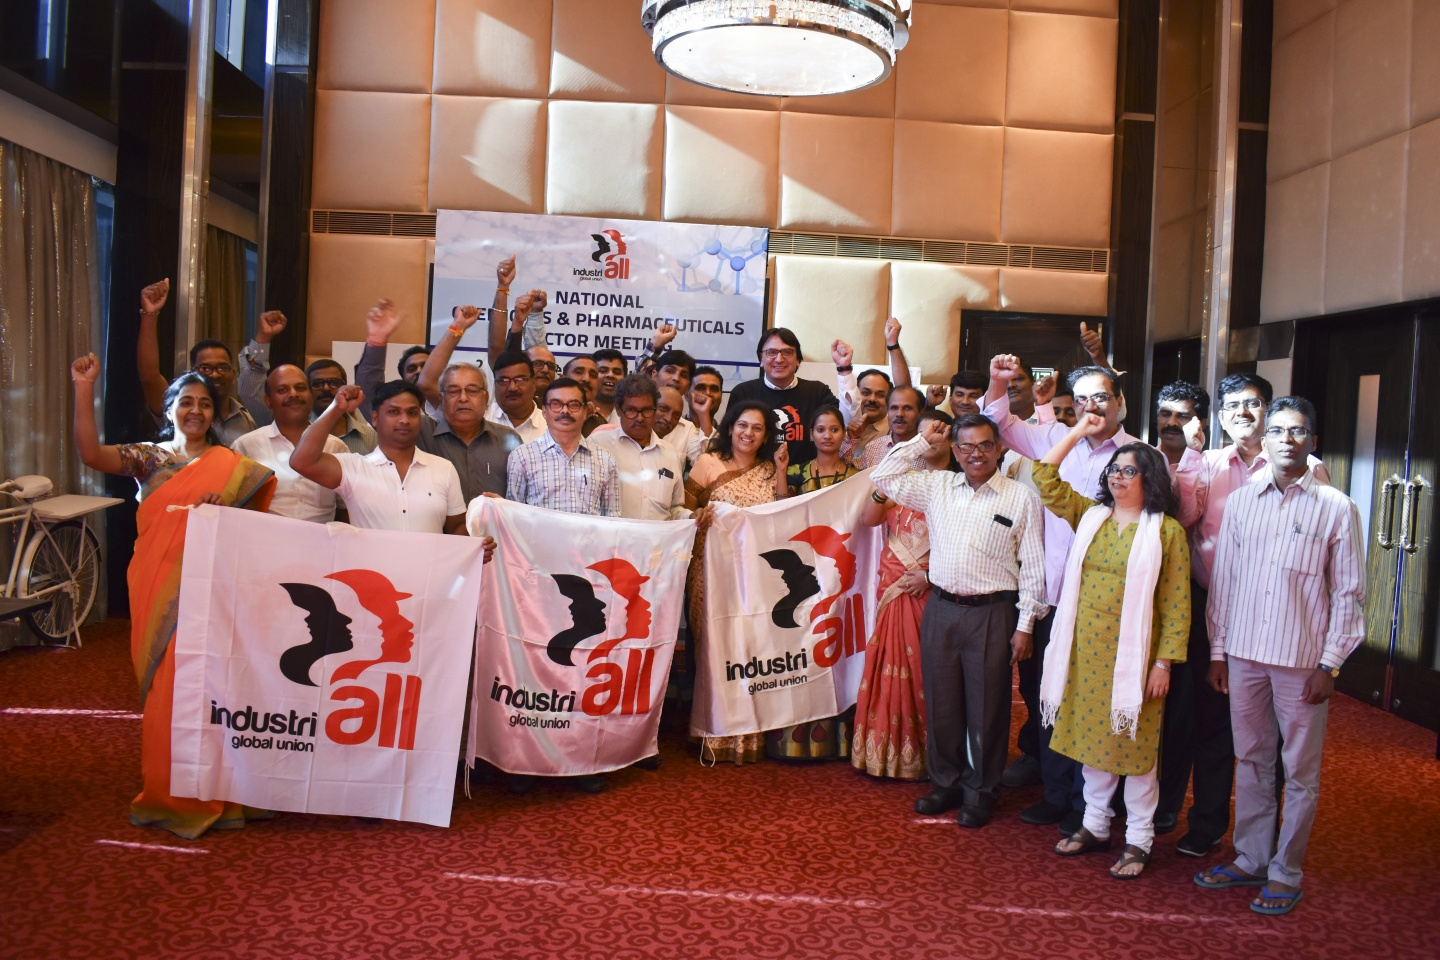 Chemical and pharmaceutical unions build power in India | IndustriALL